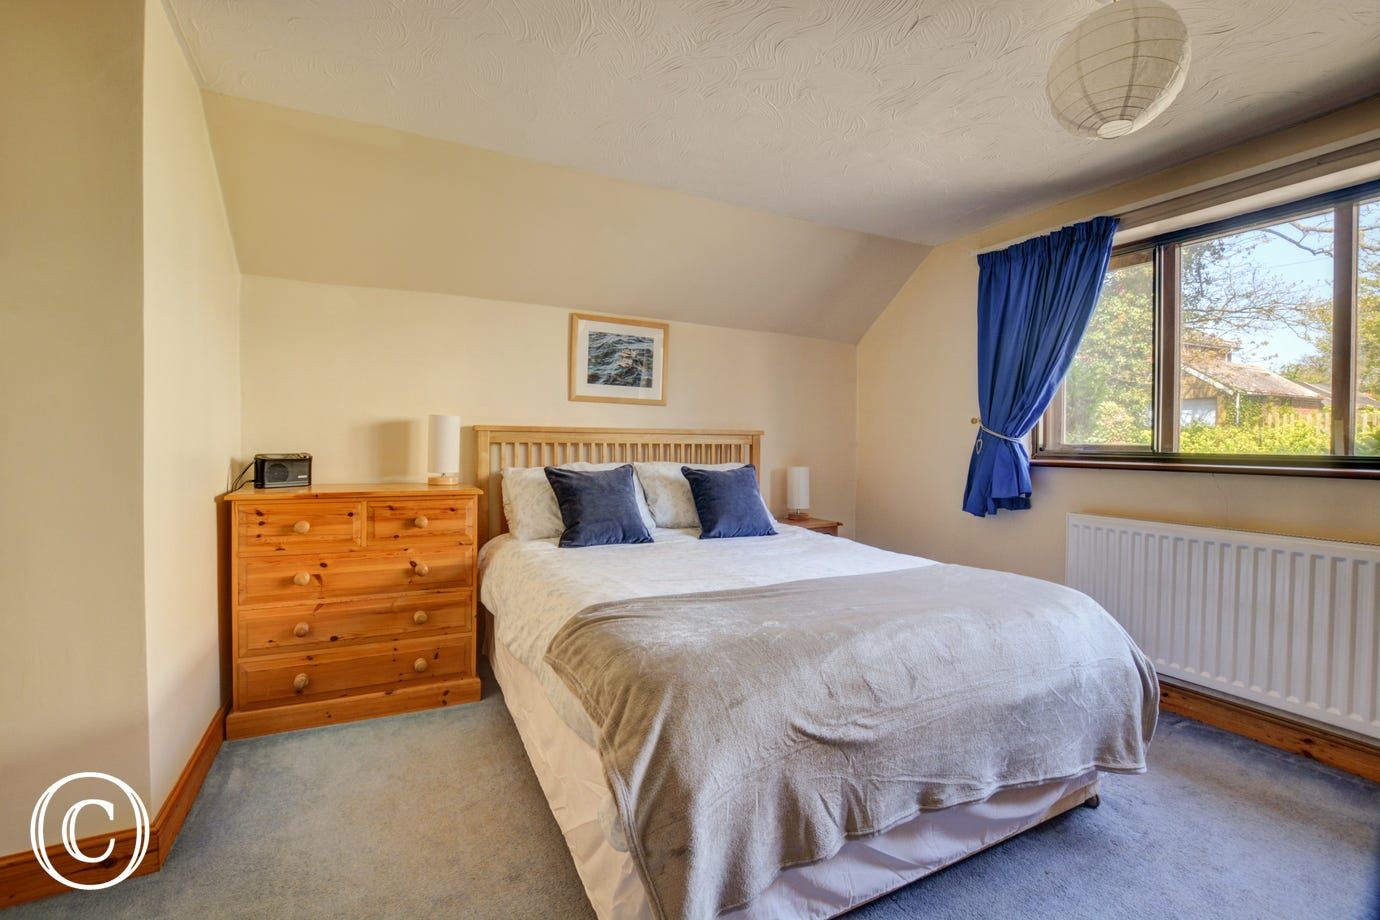 Light and airy double bedroom with a with a king-size bed and washbasin - please note there are two or three steps from hallway up to this bedroom